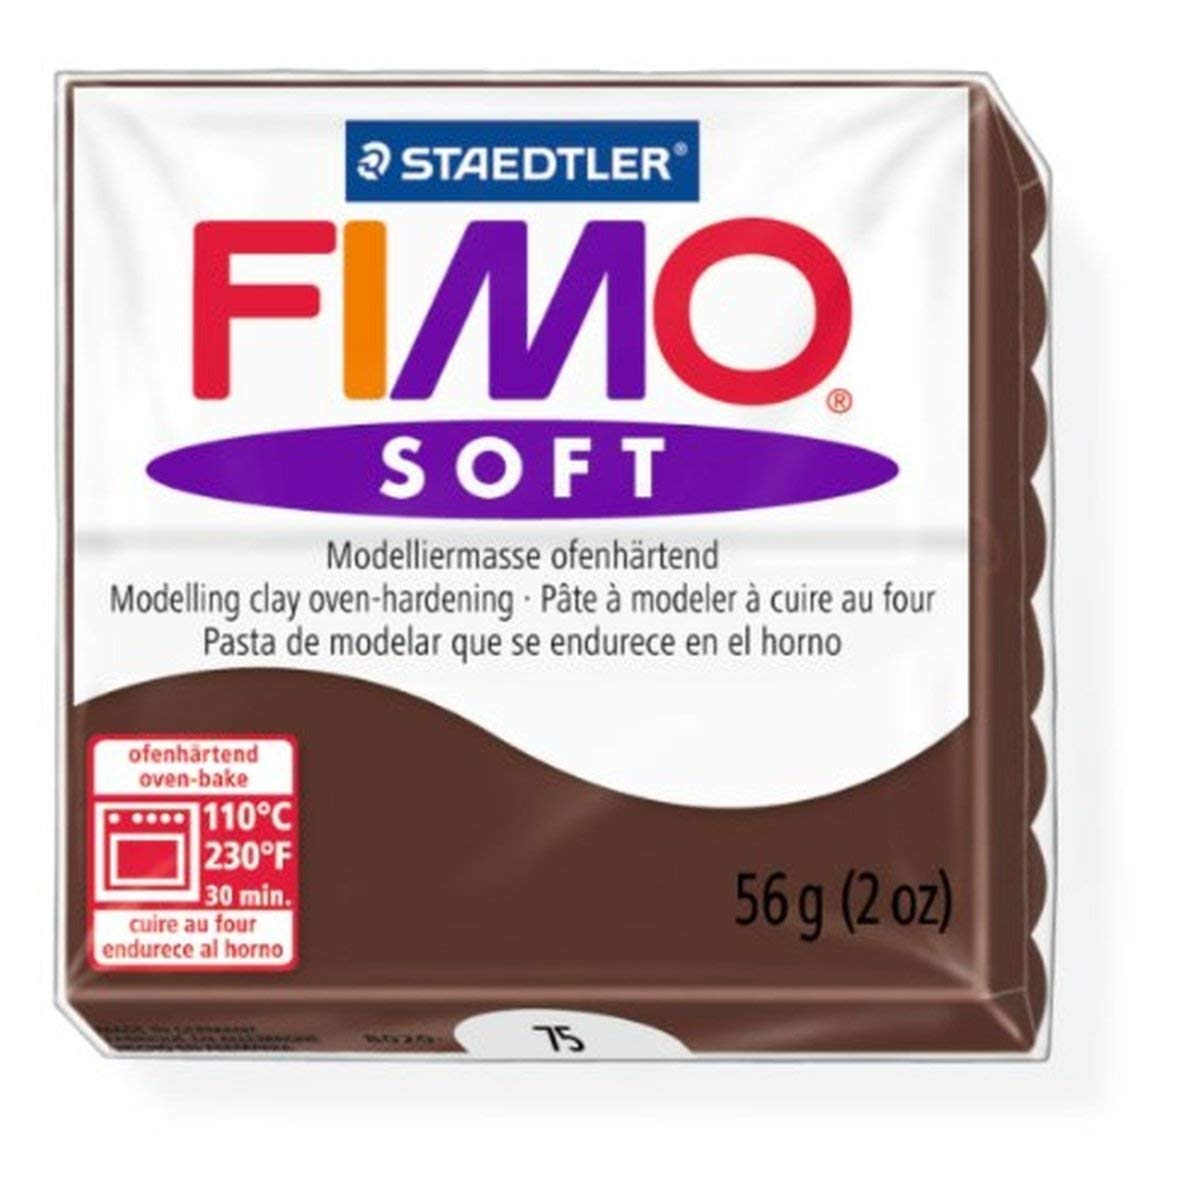 Staedtler Fimo Soft Chocolate (75) Oven Bake Modelling Clay Moulding Polymer Block Colour 56g (1 Pack)